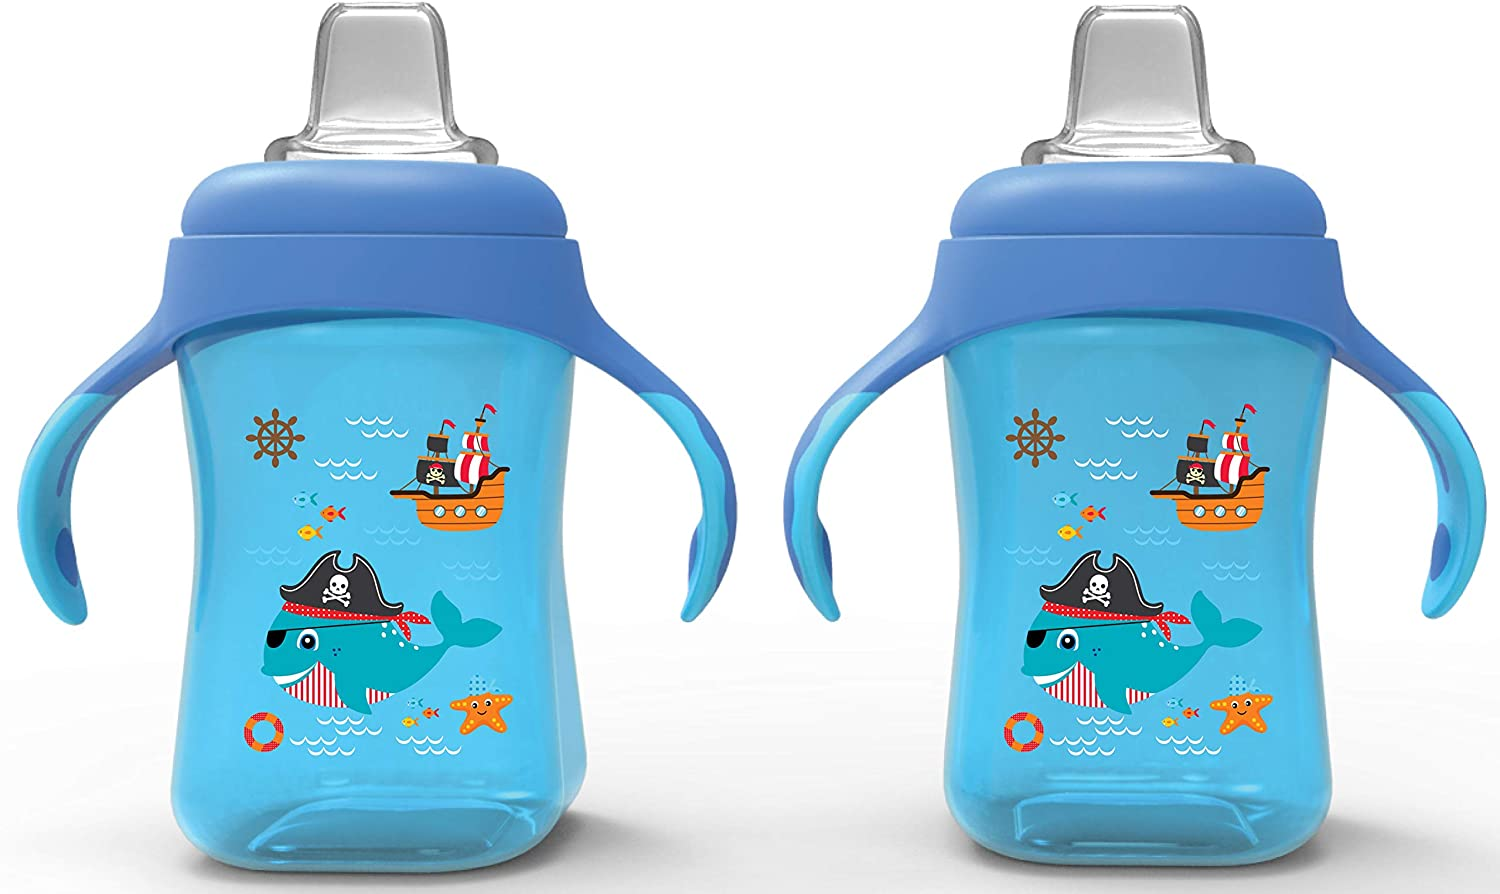 Avima Baby 10 oz Soft Spout Sippy Cups, Blue (Set of 2)